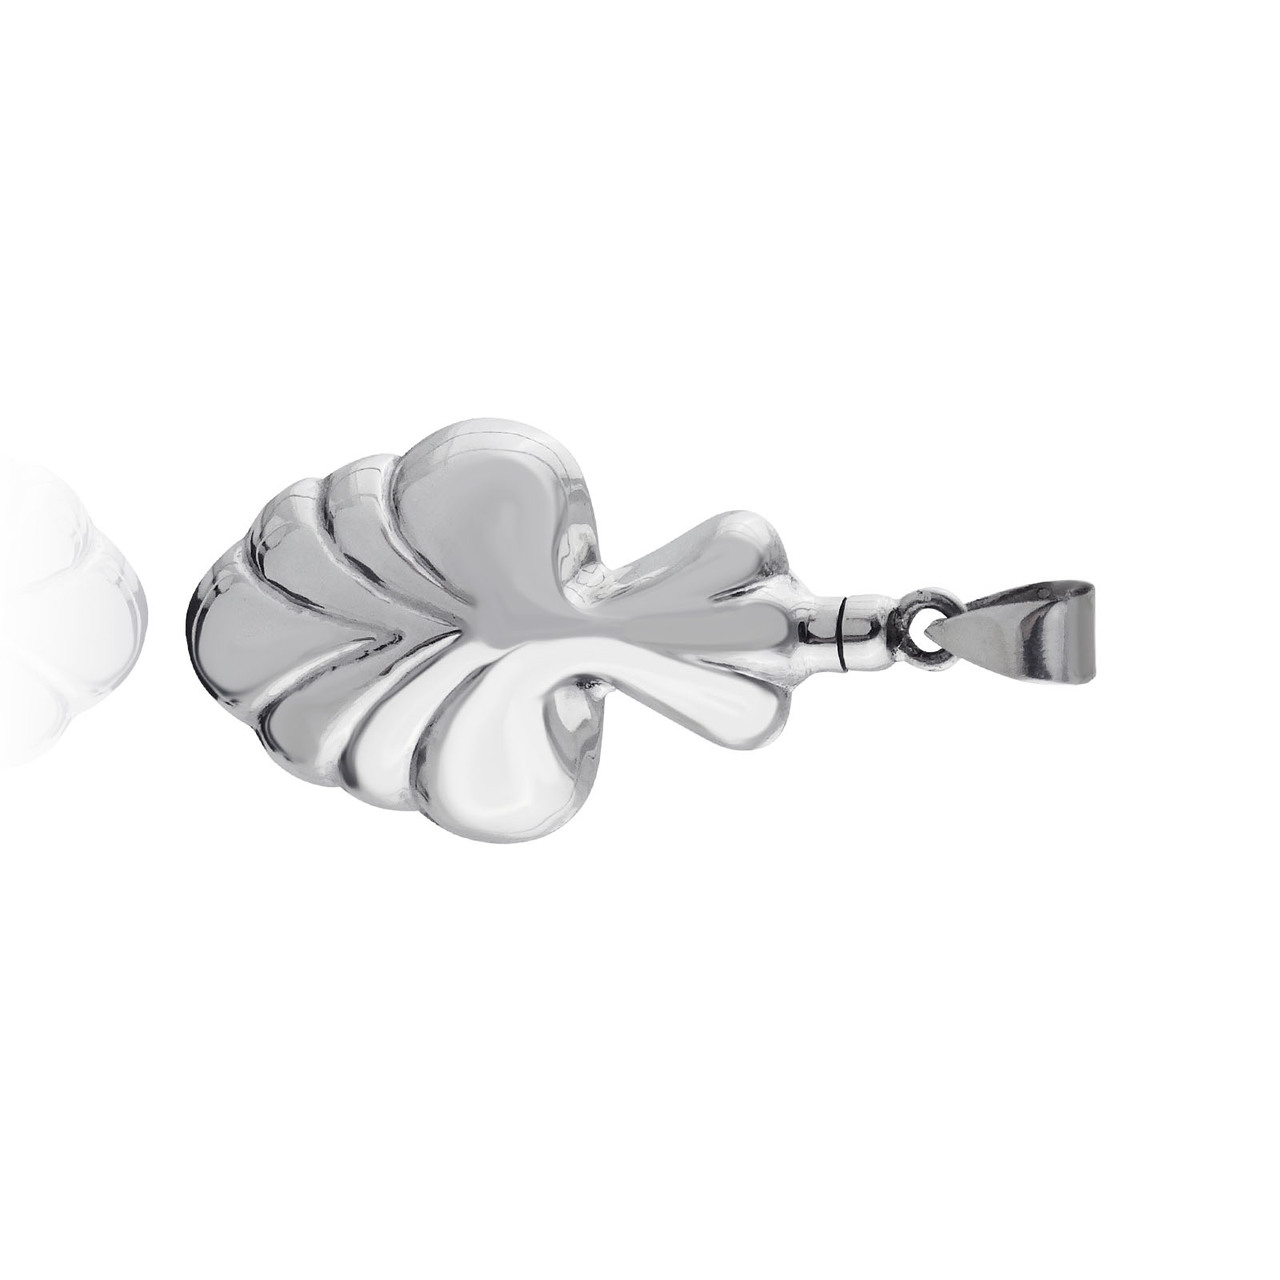 Decorative Urn Memorial Pendant - 925 Sterling Silver - PERFUME Holder or Ashes